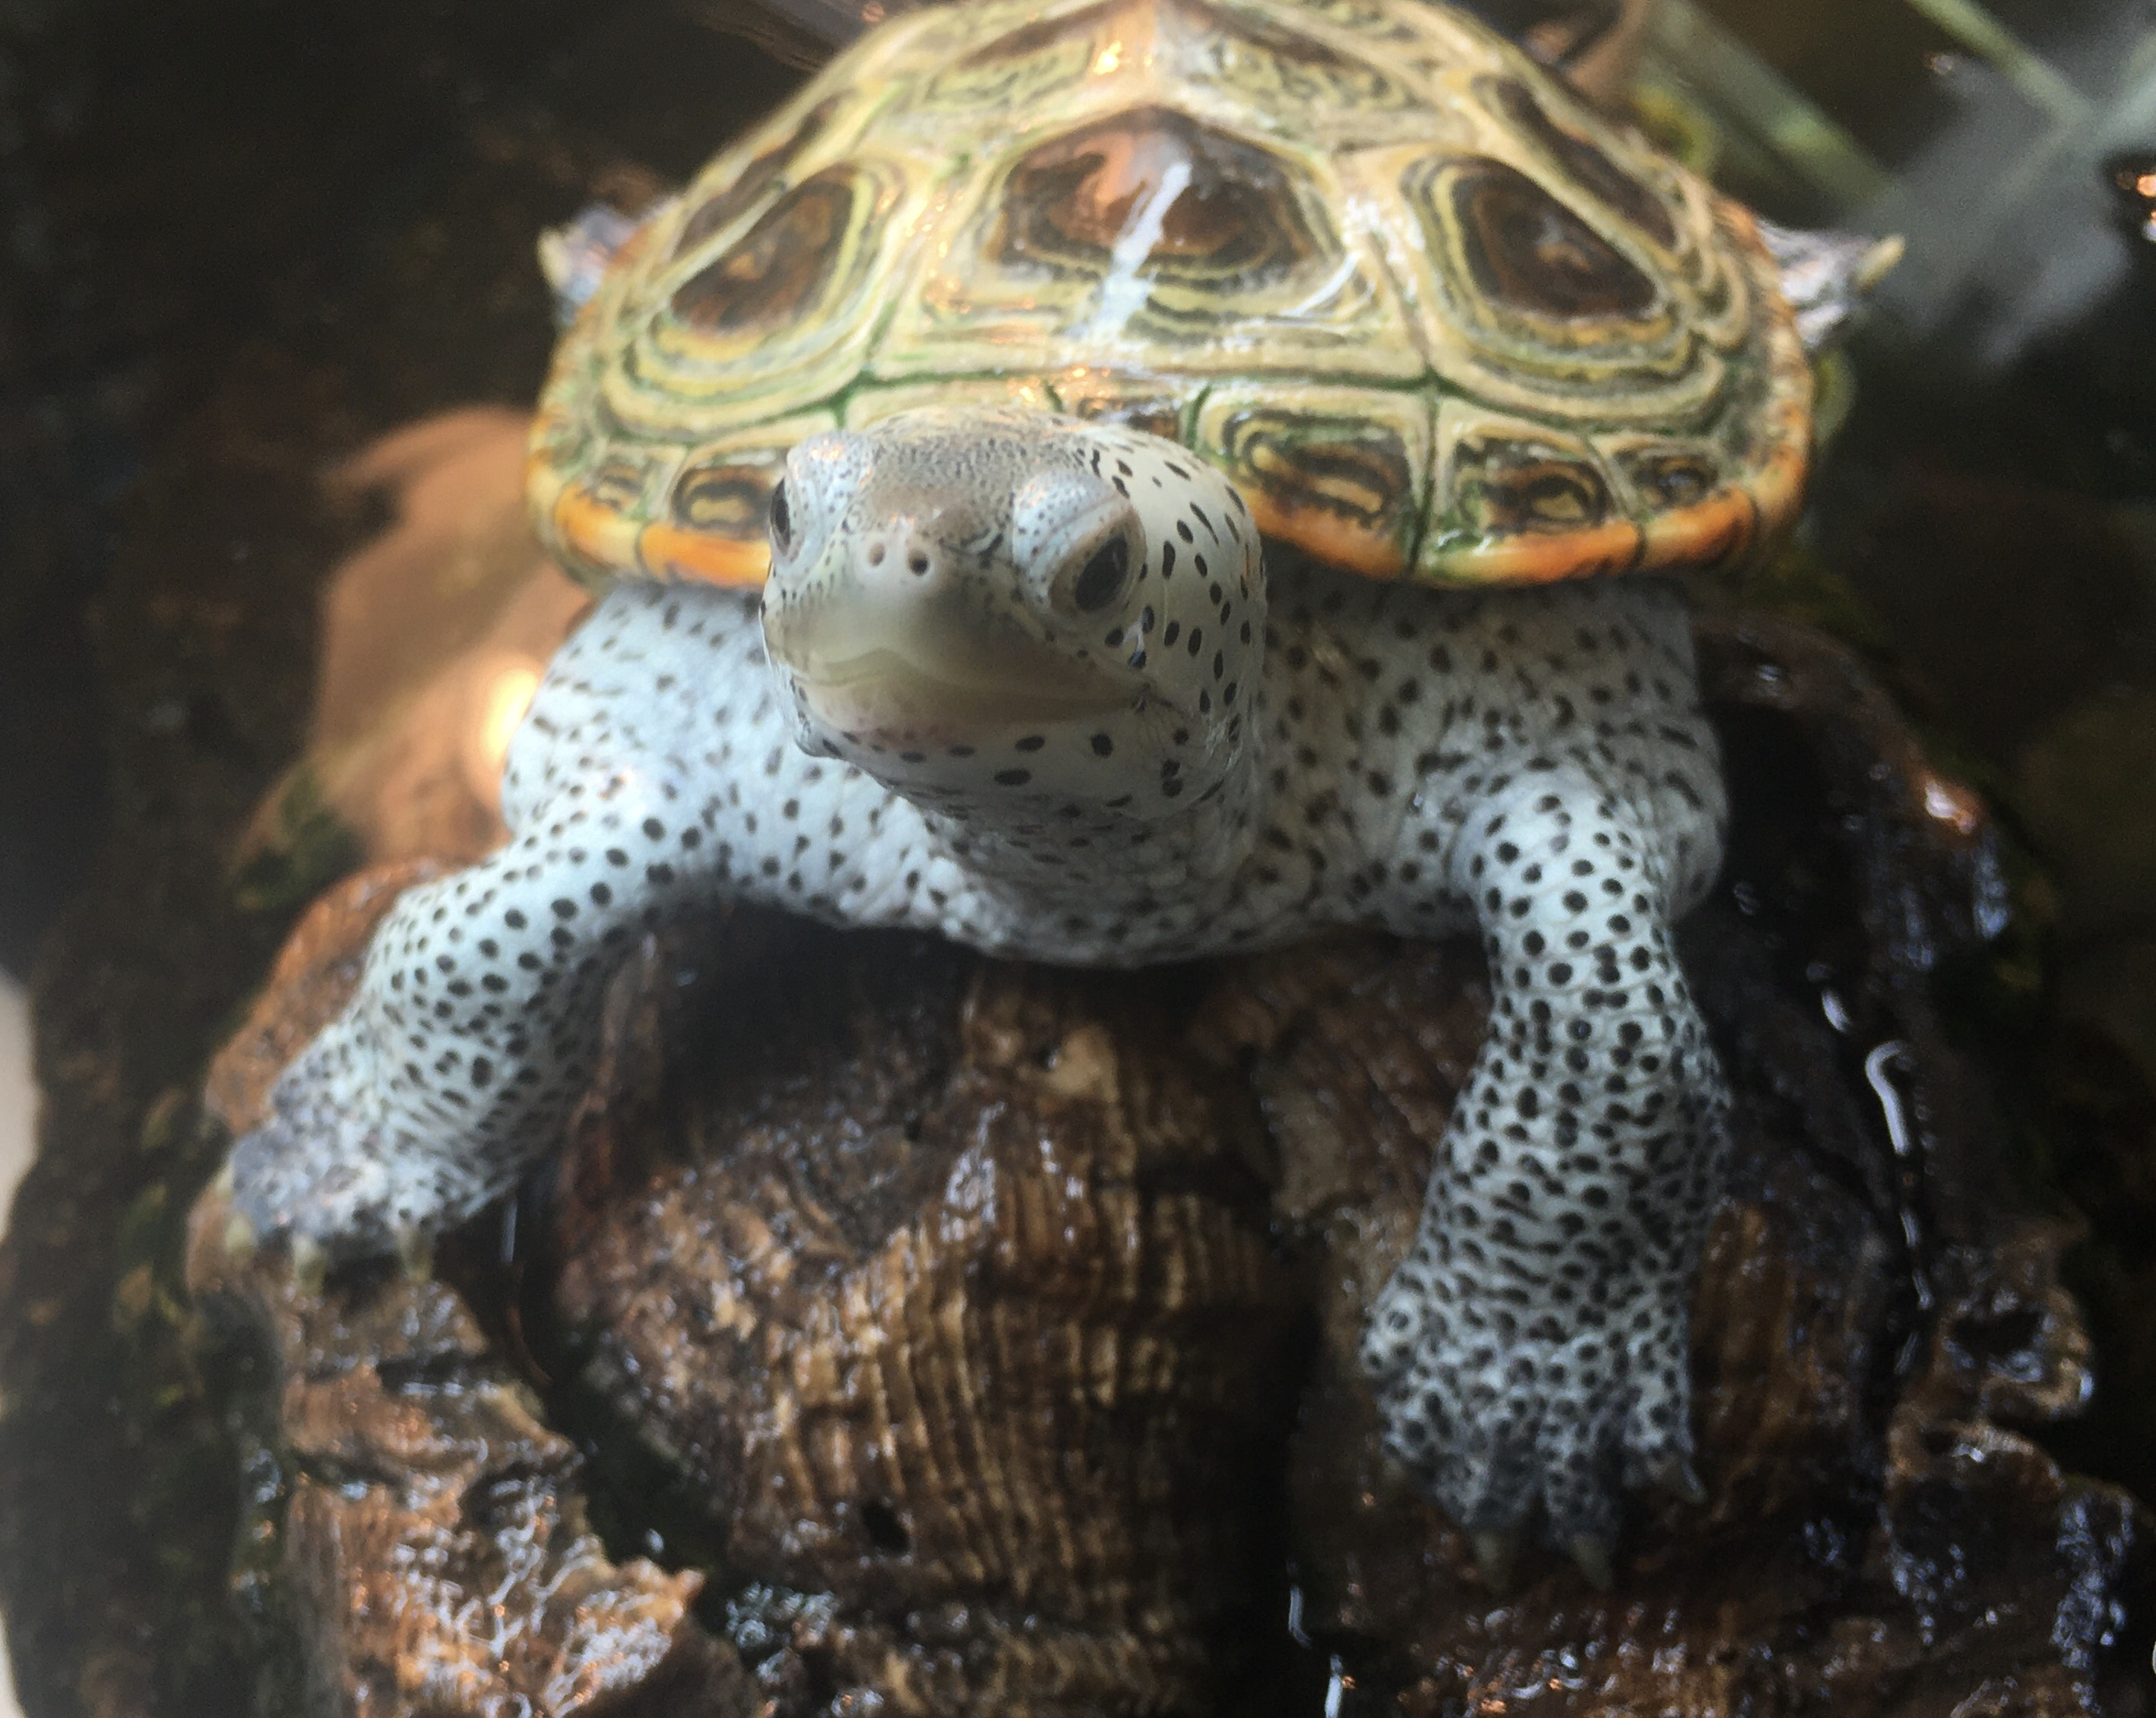 A juvenile terrapin turtle looks at the camera.